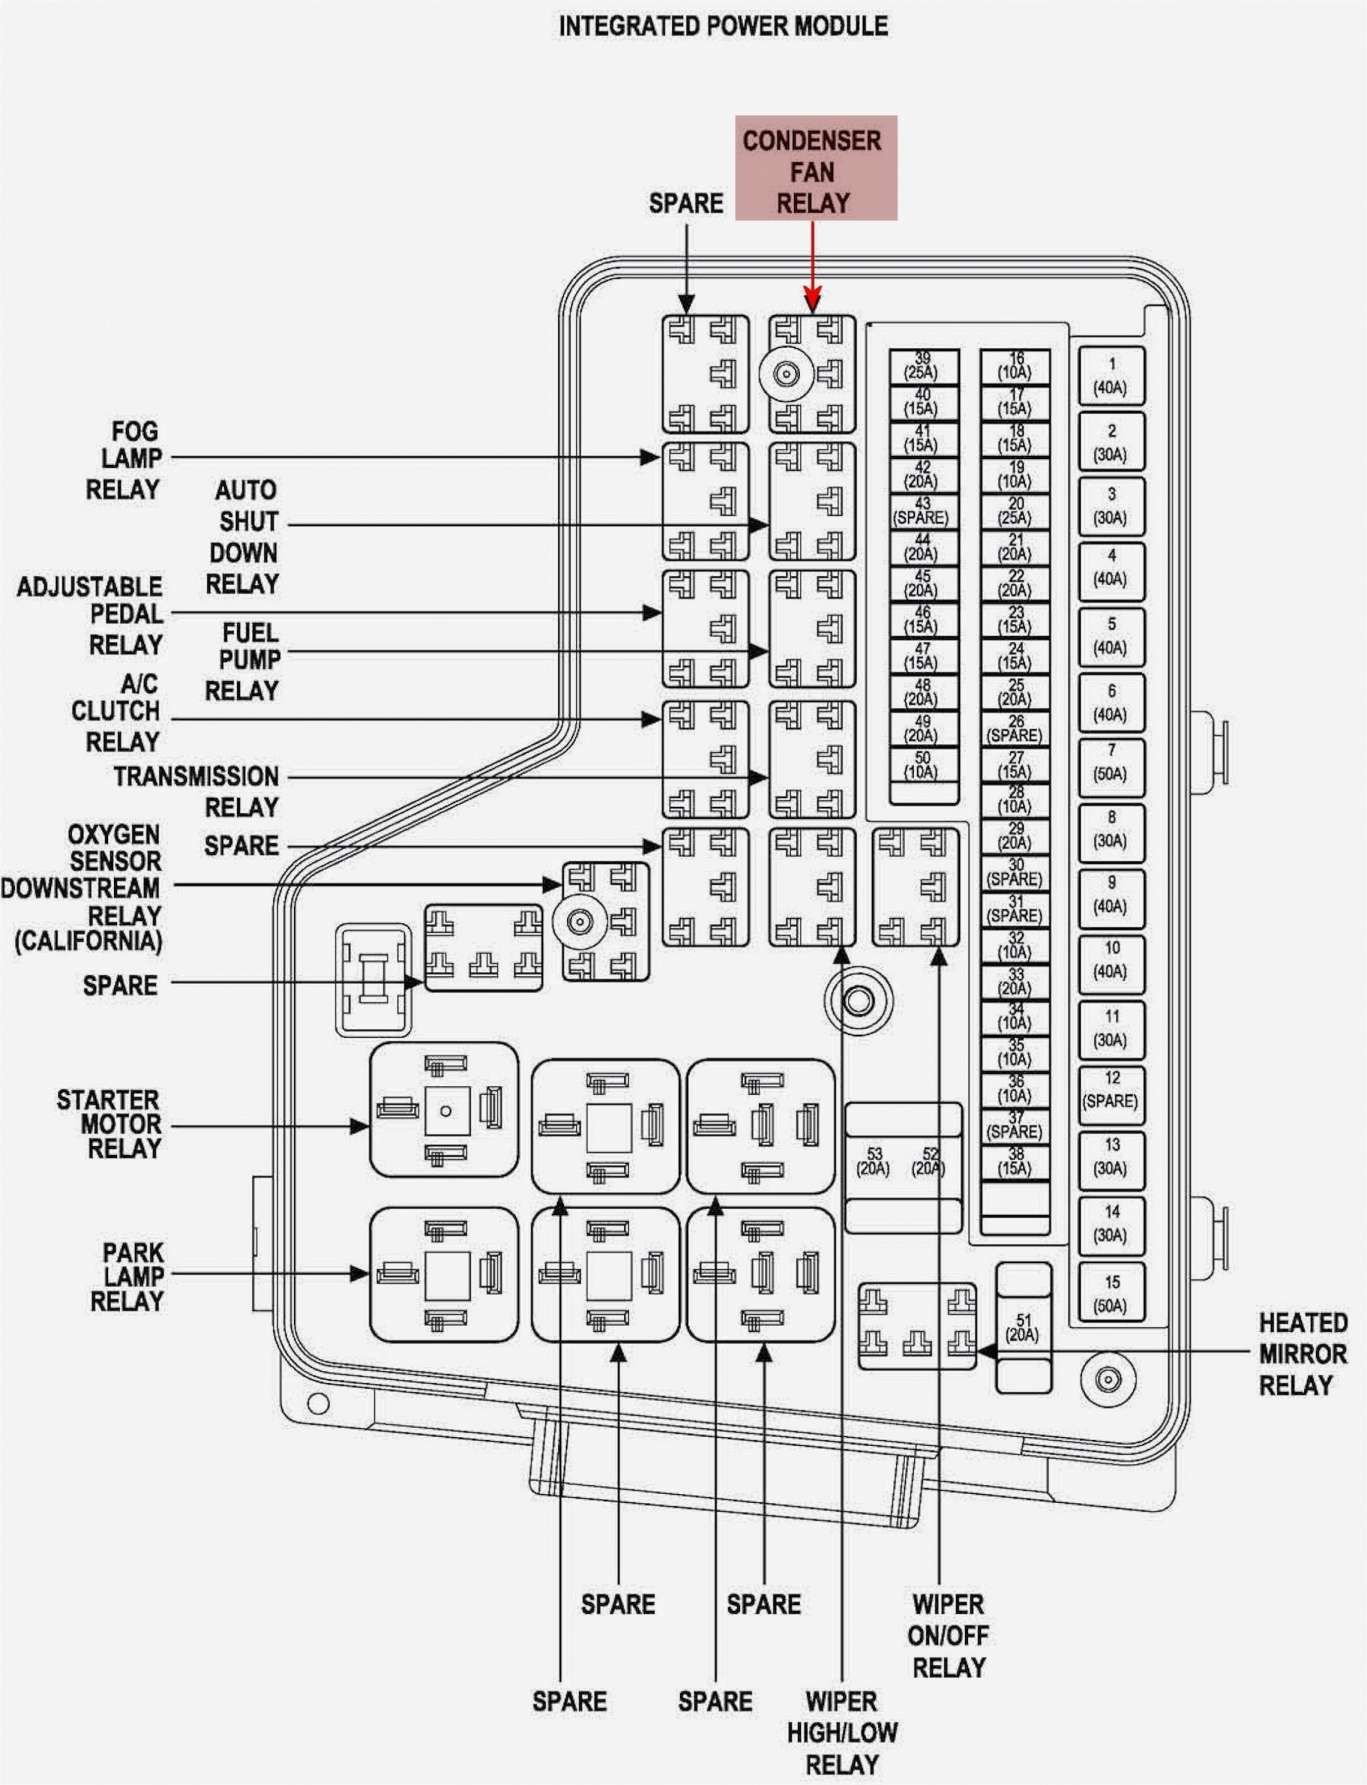 17 Fuse Box Diagram 96 Ram 1500 Truck Truck Diagram Wiringg Net In 2020 Dodge Ram 1500 Ram 1500 Dodge Ram